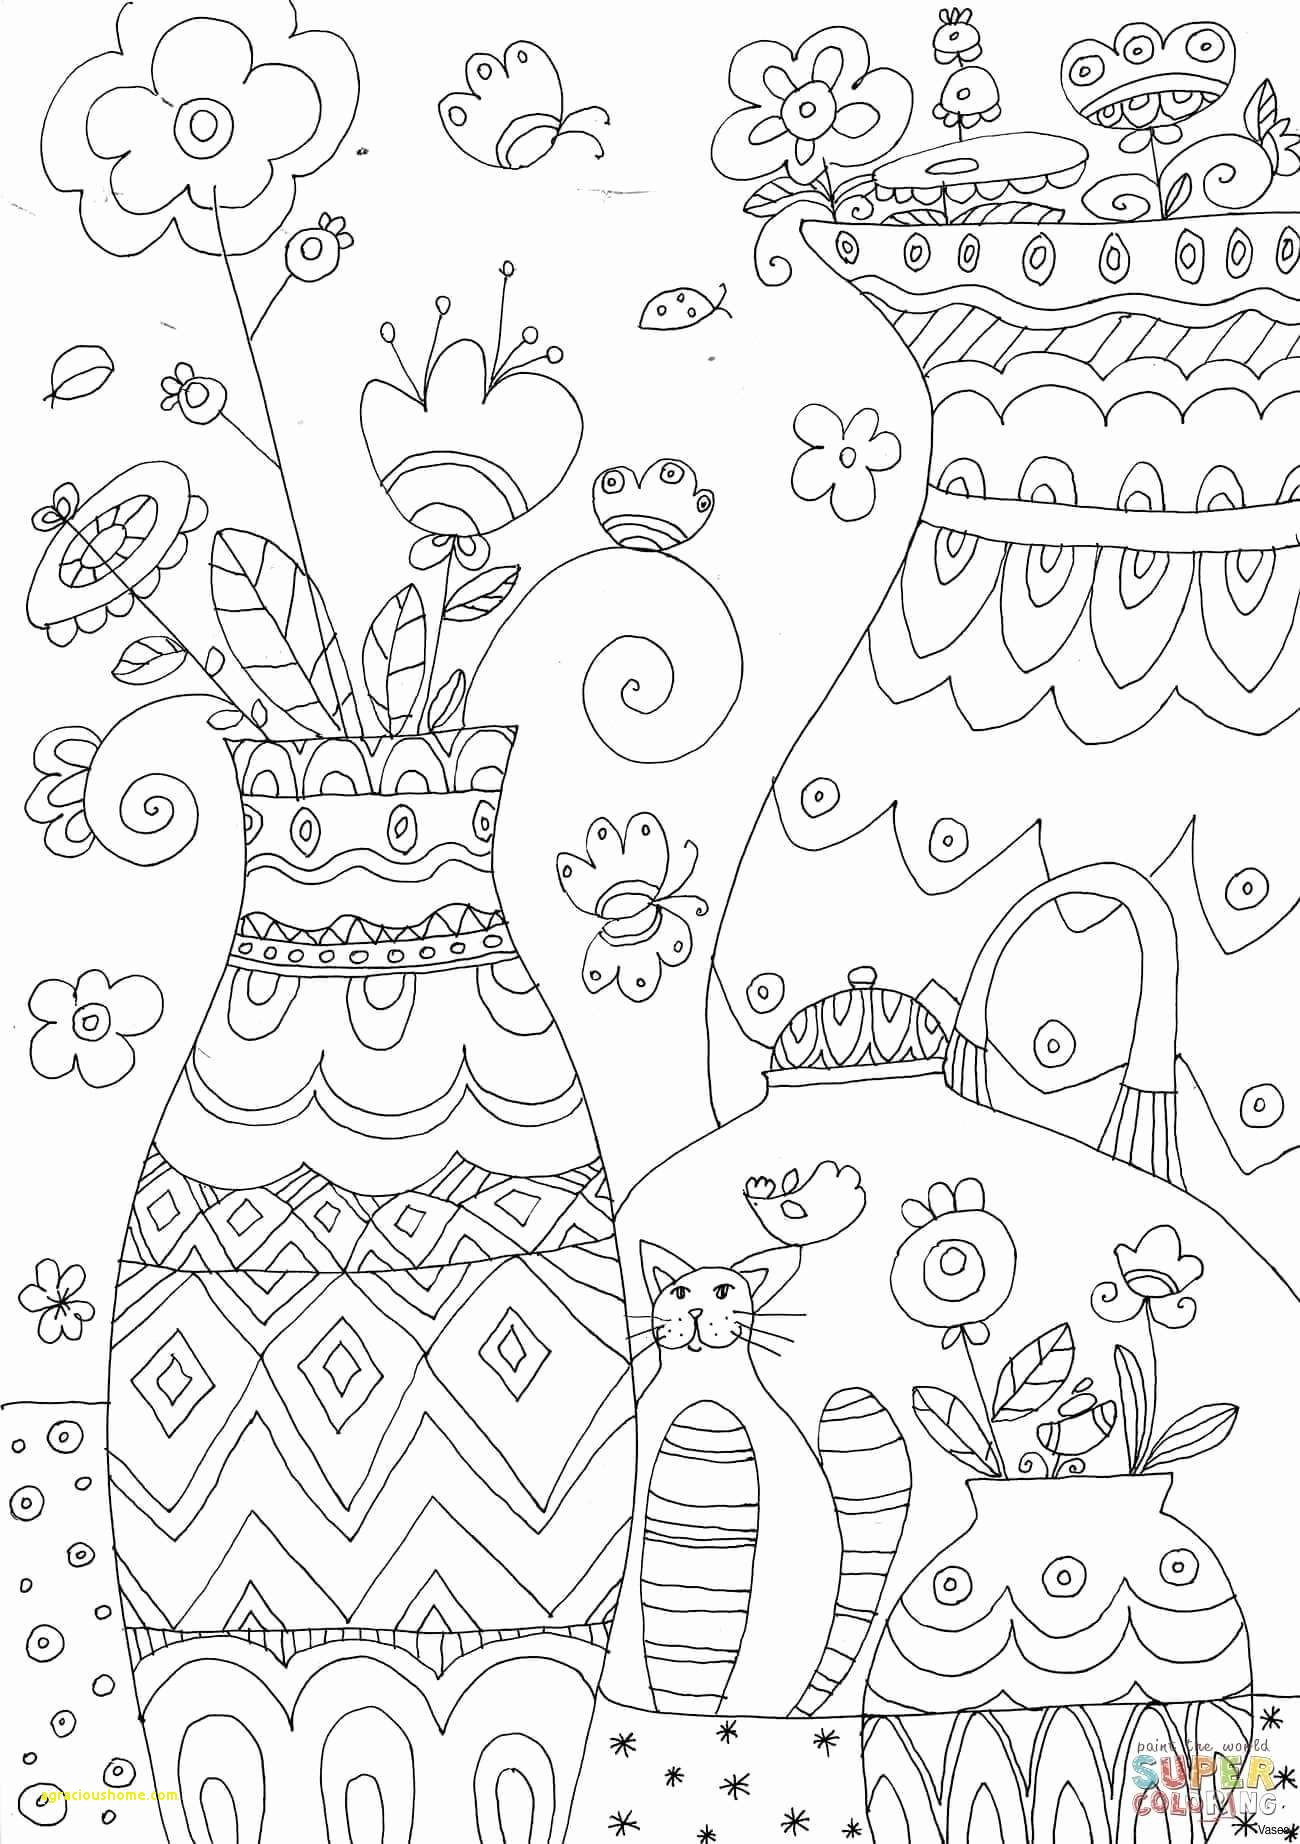 three hands vase of christmas gifts for teens with regard to bratz coloring pages best coloring pages to color luxury blank coloring pages printable cds 0d